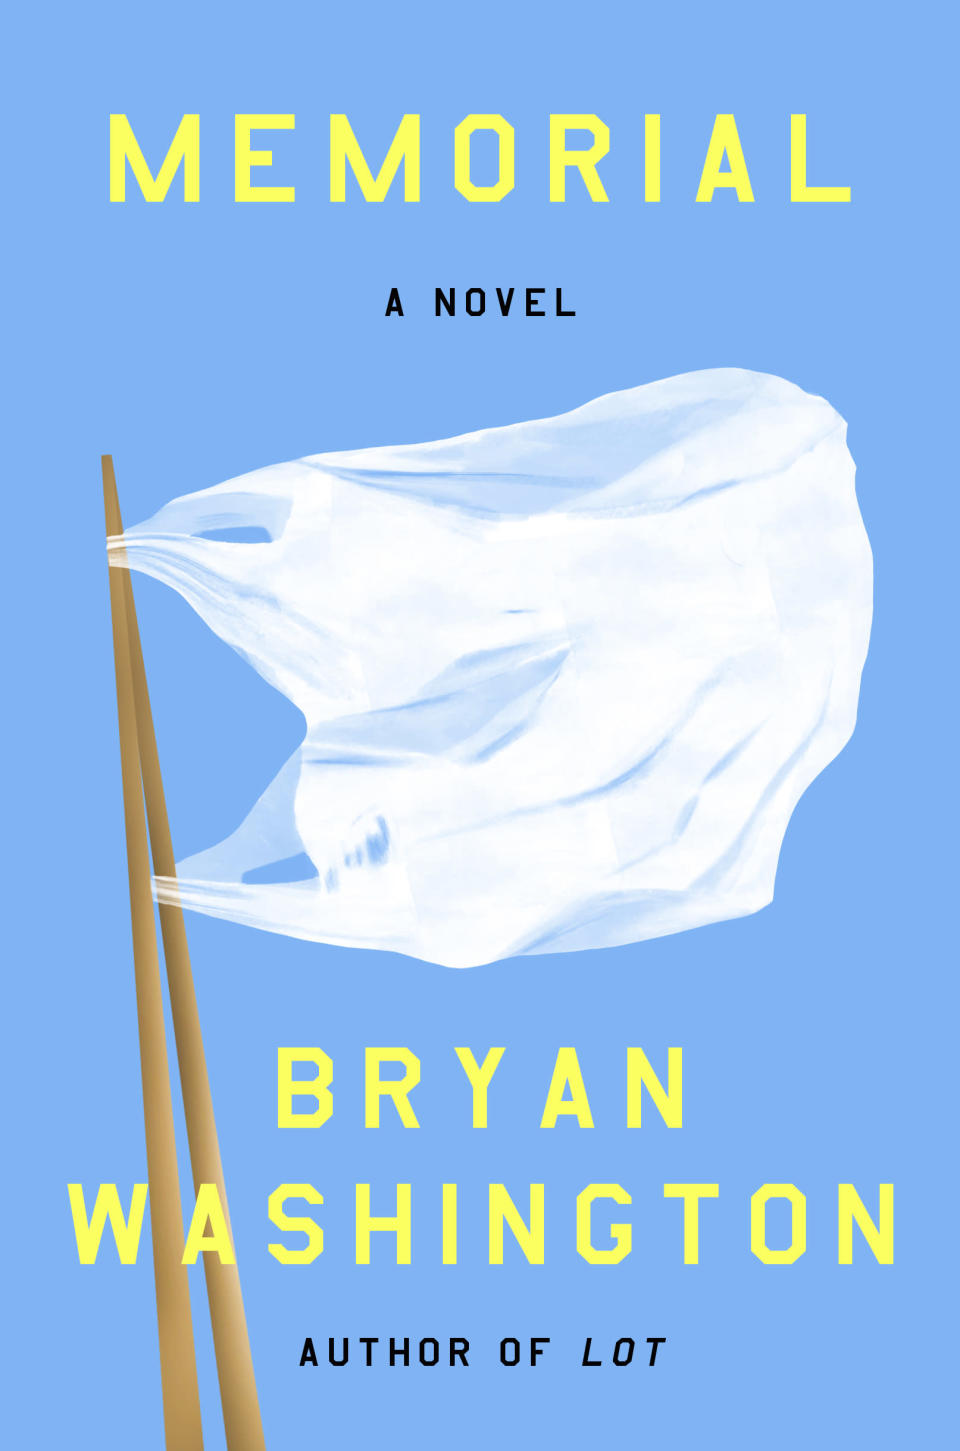 """This cover image released by Riverhead Books shows """"Memorial,"""" a novel by Bryan Washington. (Riverhead Books via AP)"""